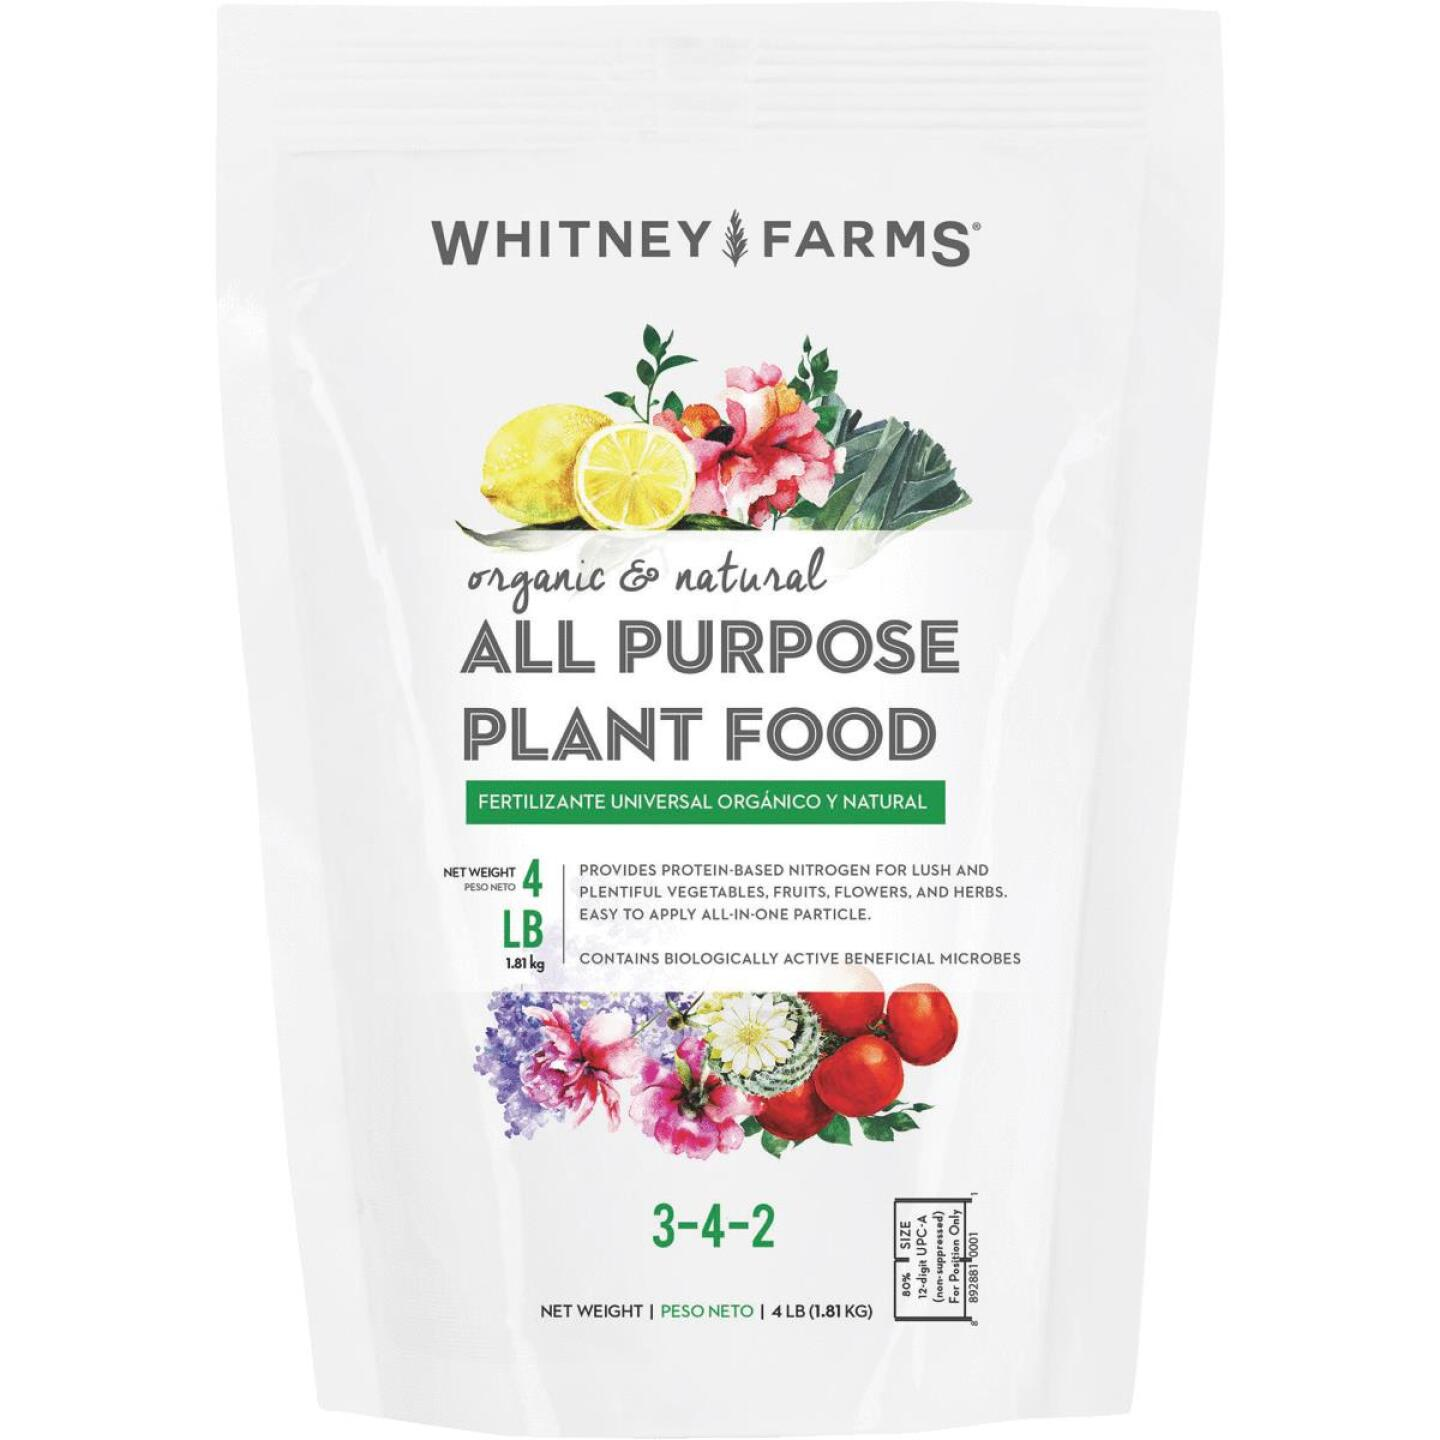 Whitney Farms 4 Lb. 3-4-2 Organic & Natural All-Purpose Dry Plant Food Image 1